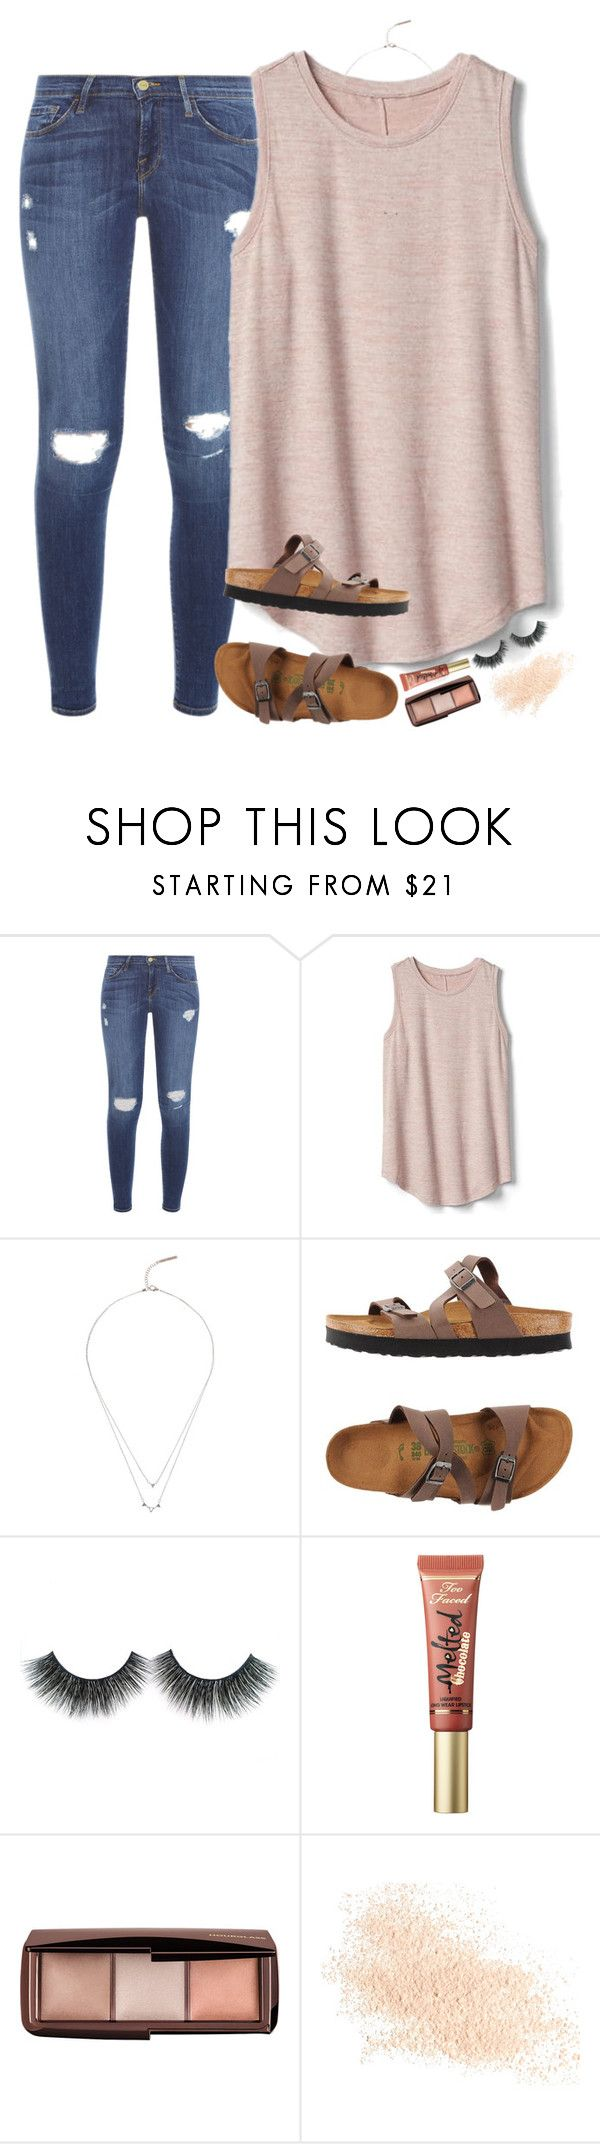 """""""I will cling to the old rugged cross"""" by southernstruttin ❤ liked on Polyvore featuring Frame, Gap, Lucky Brand, Birkenstock, Too Faced Cosmetics, Hourglass Cosmetics and Eve Lom"""